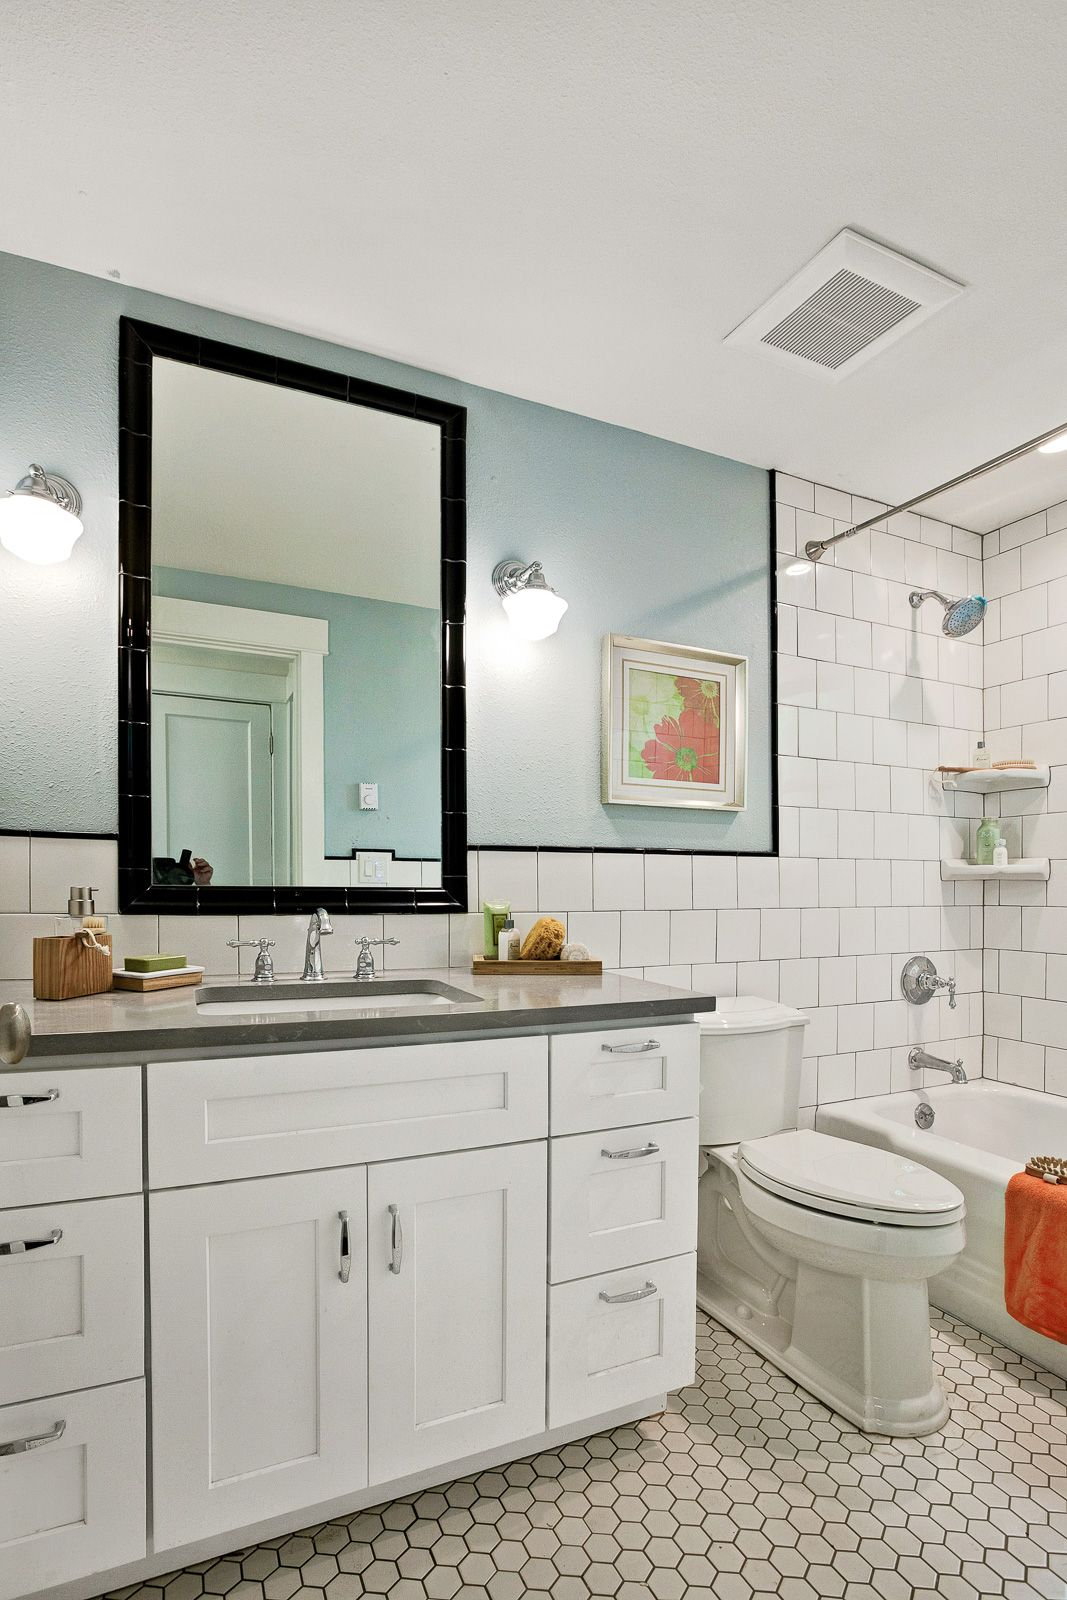 Good example of tile framed mirror and 6x6 white tiles brickset with ...